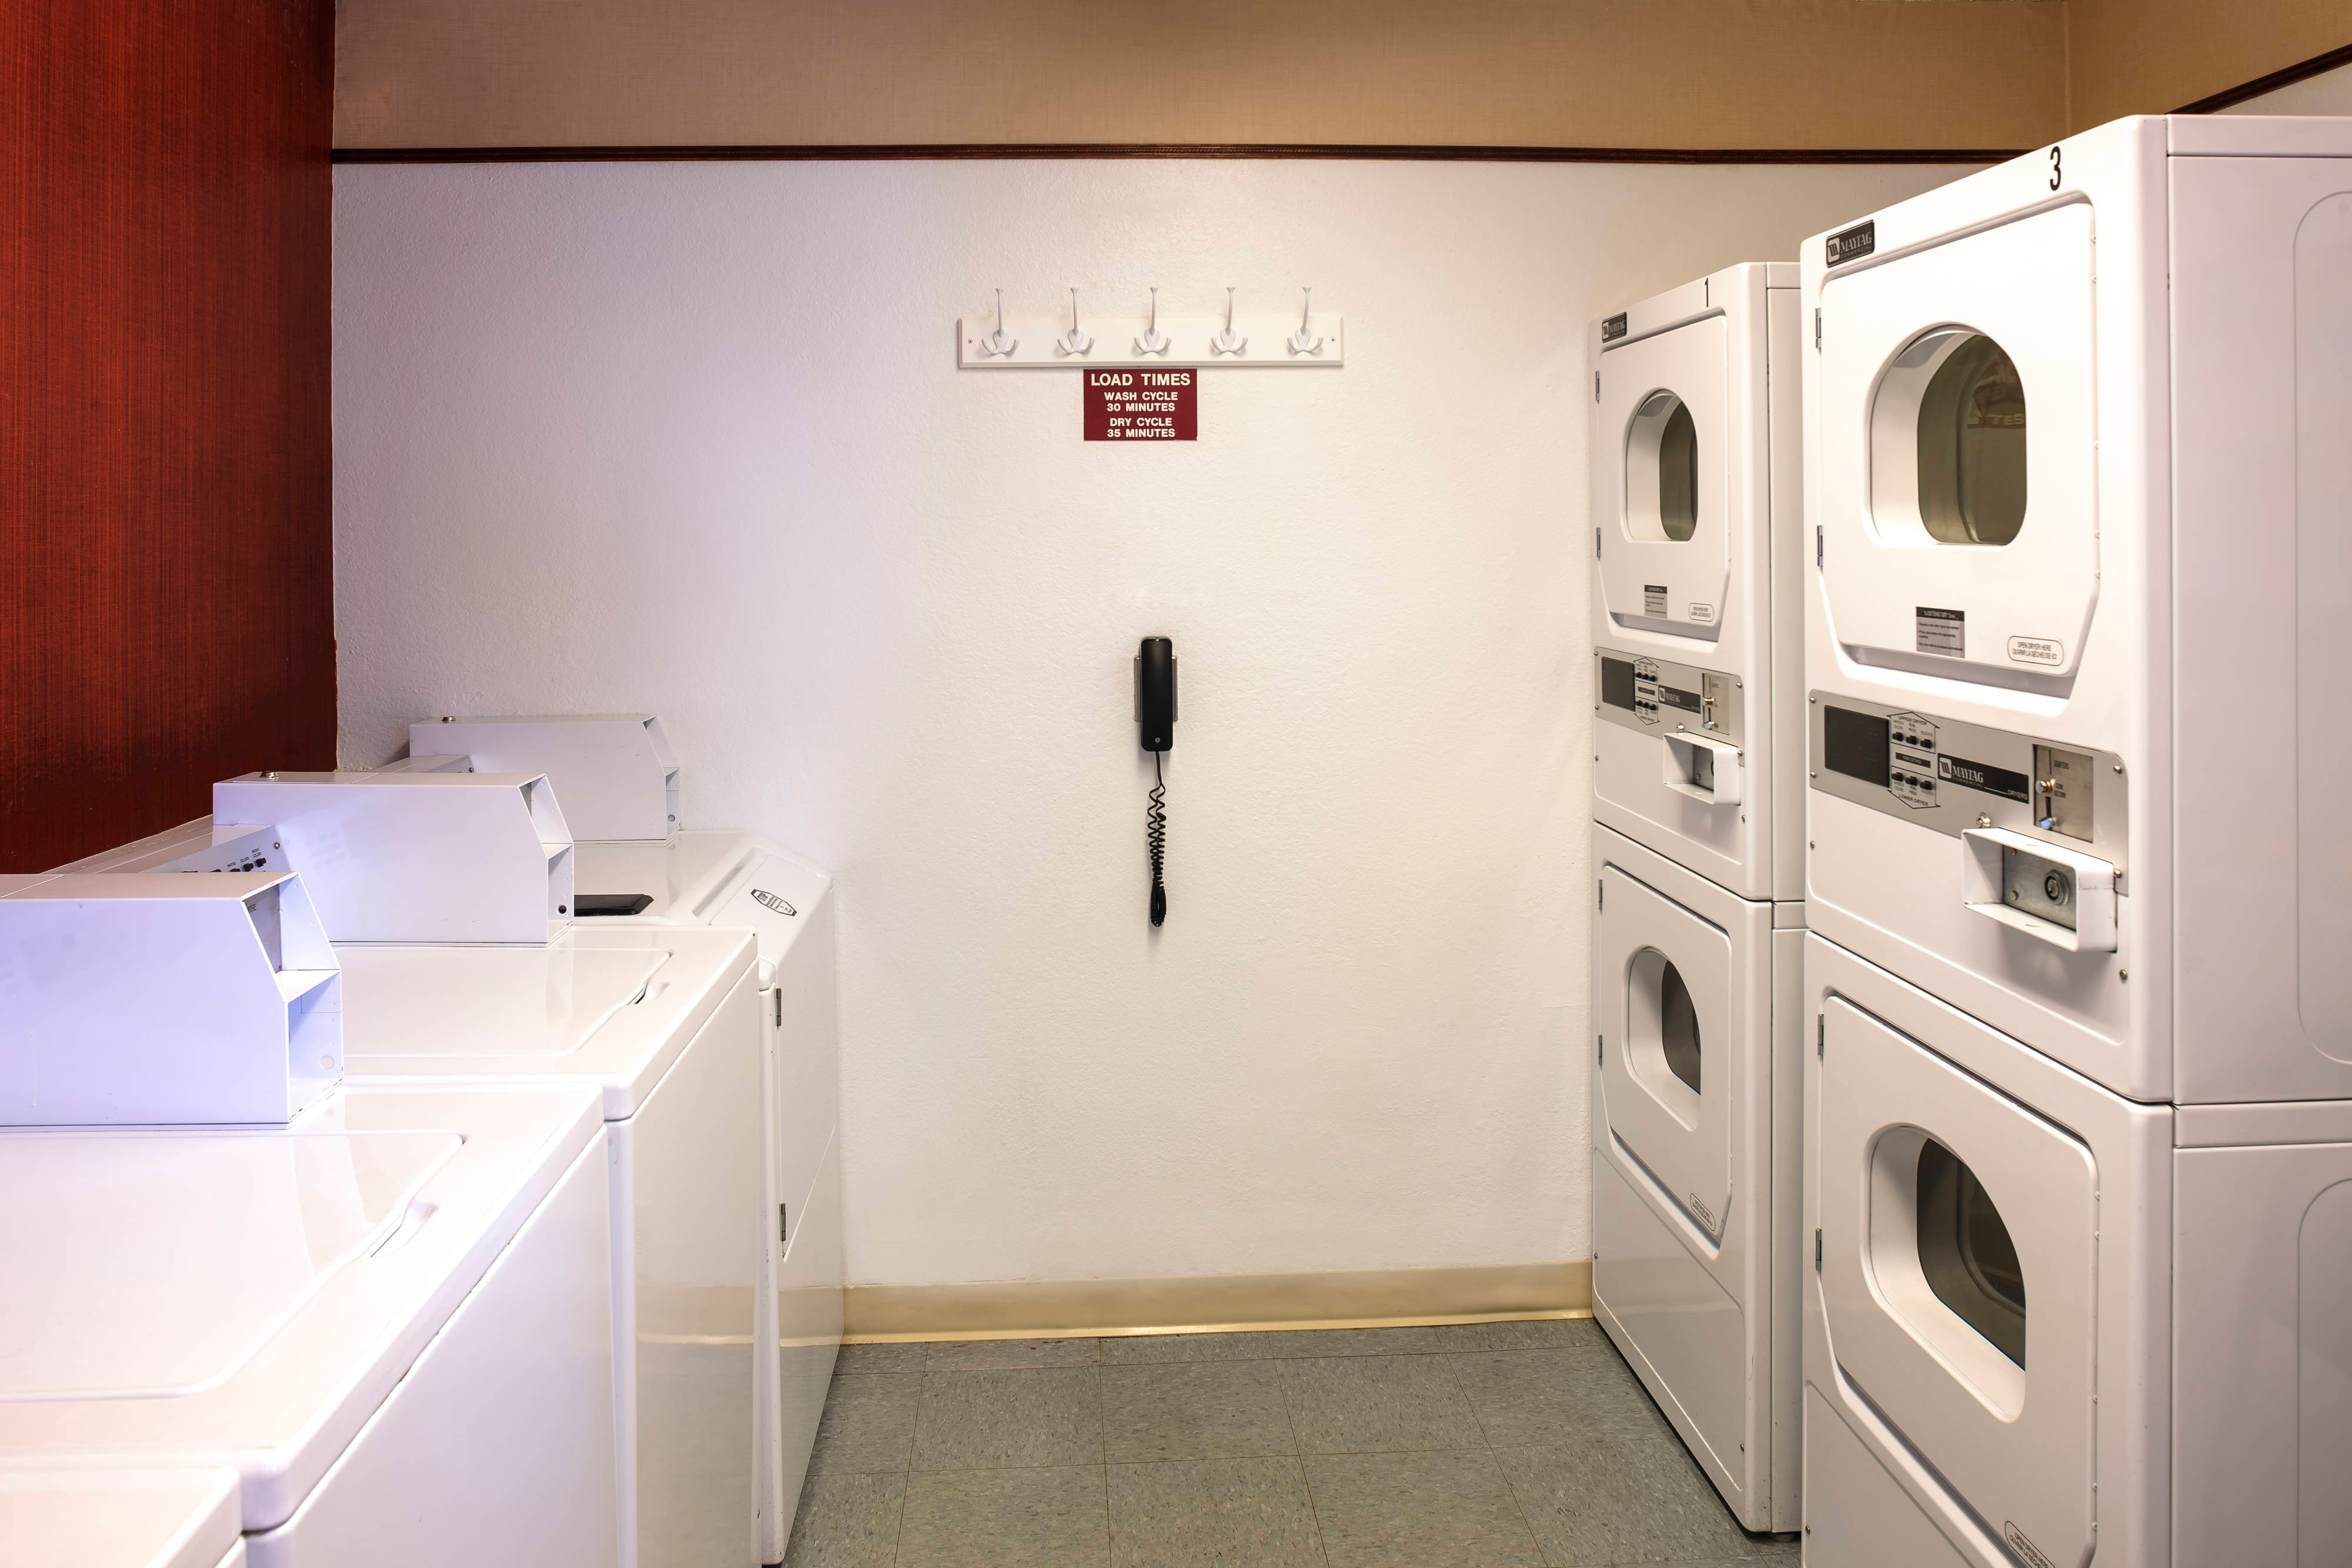 Residence Inn Laundry Room